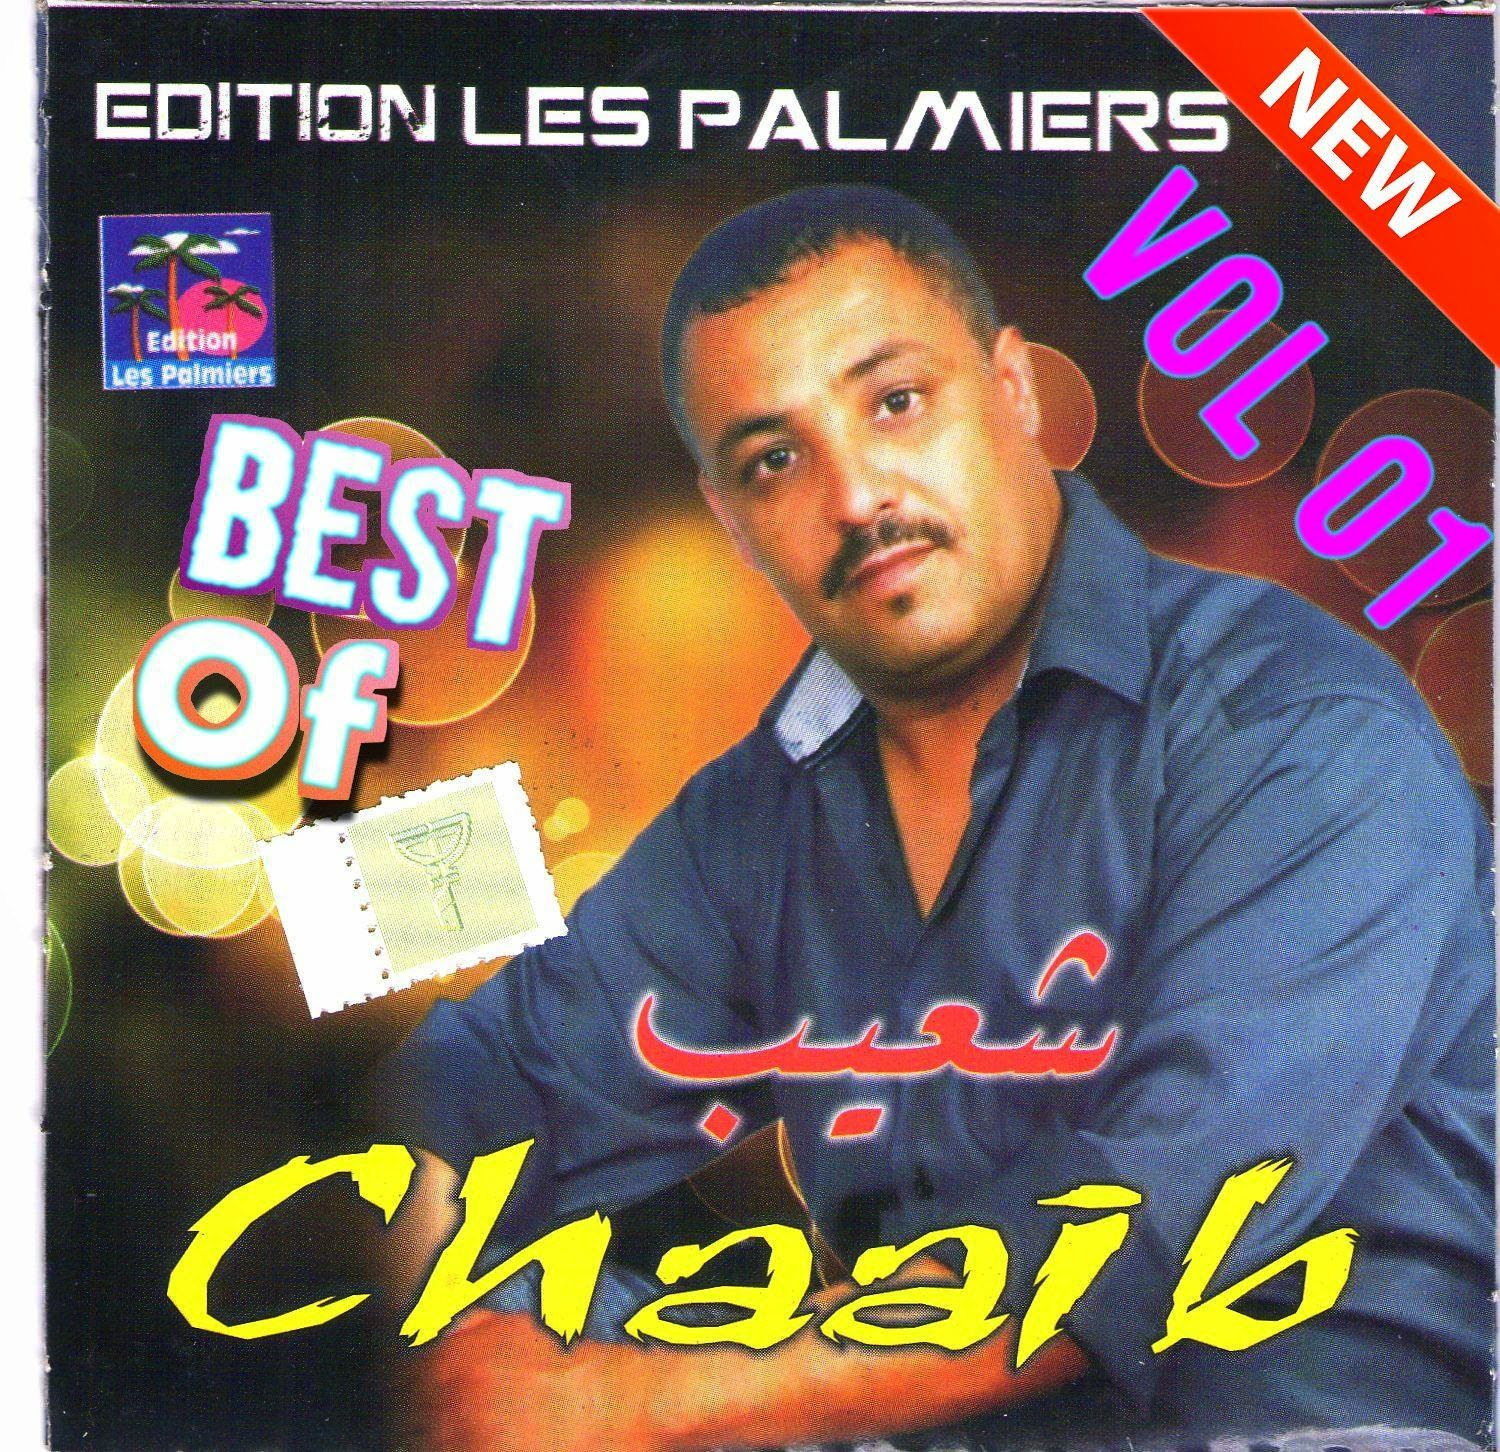 Cheikh Chaaib-Best Of 2014 Vol 01